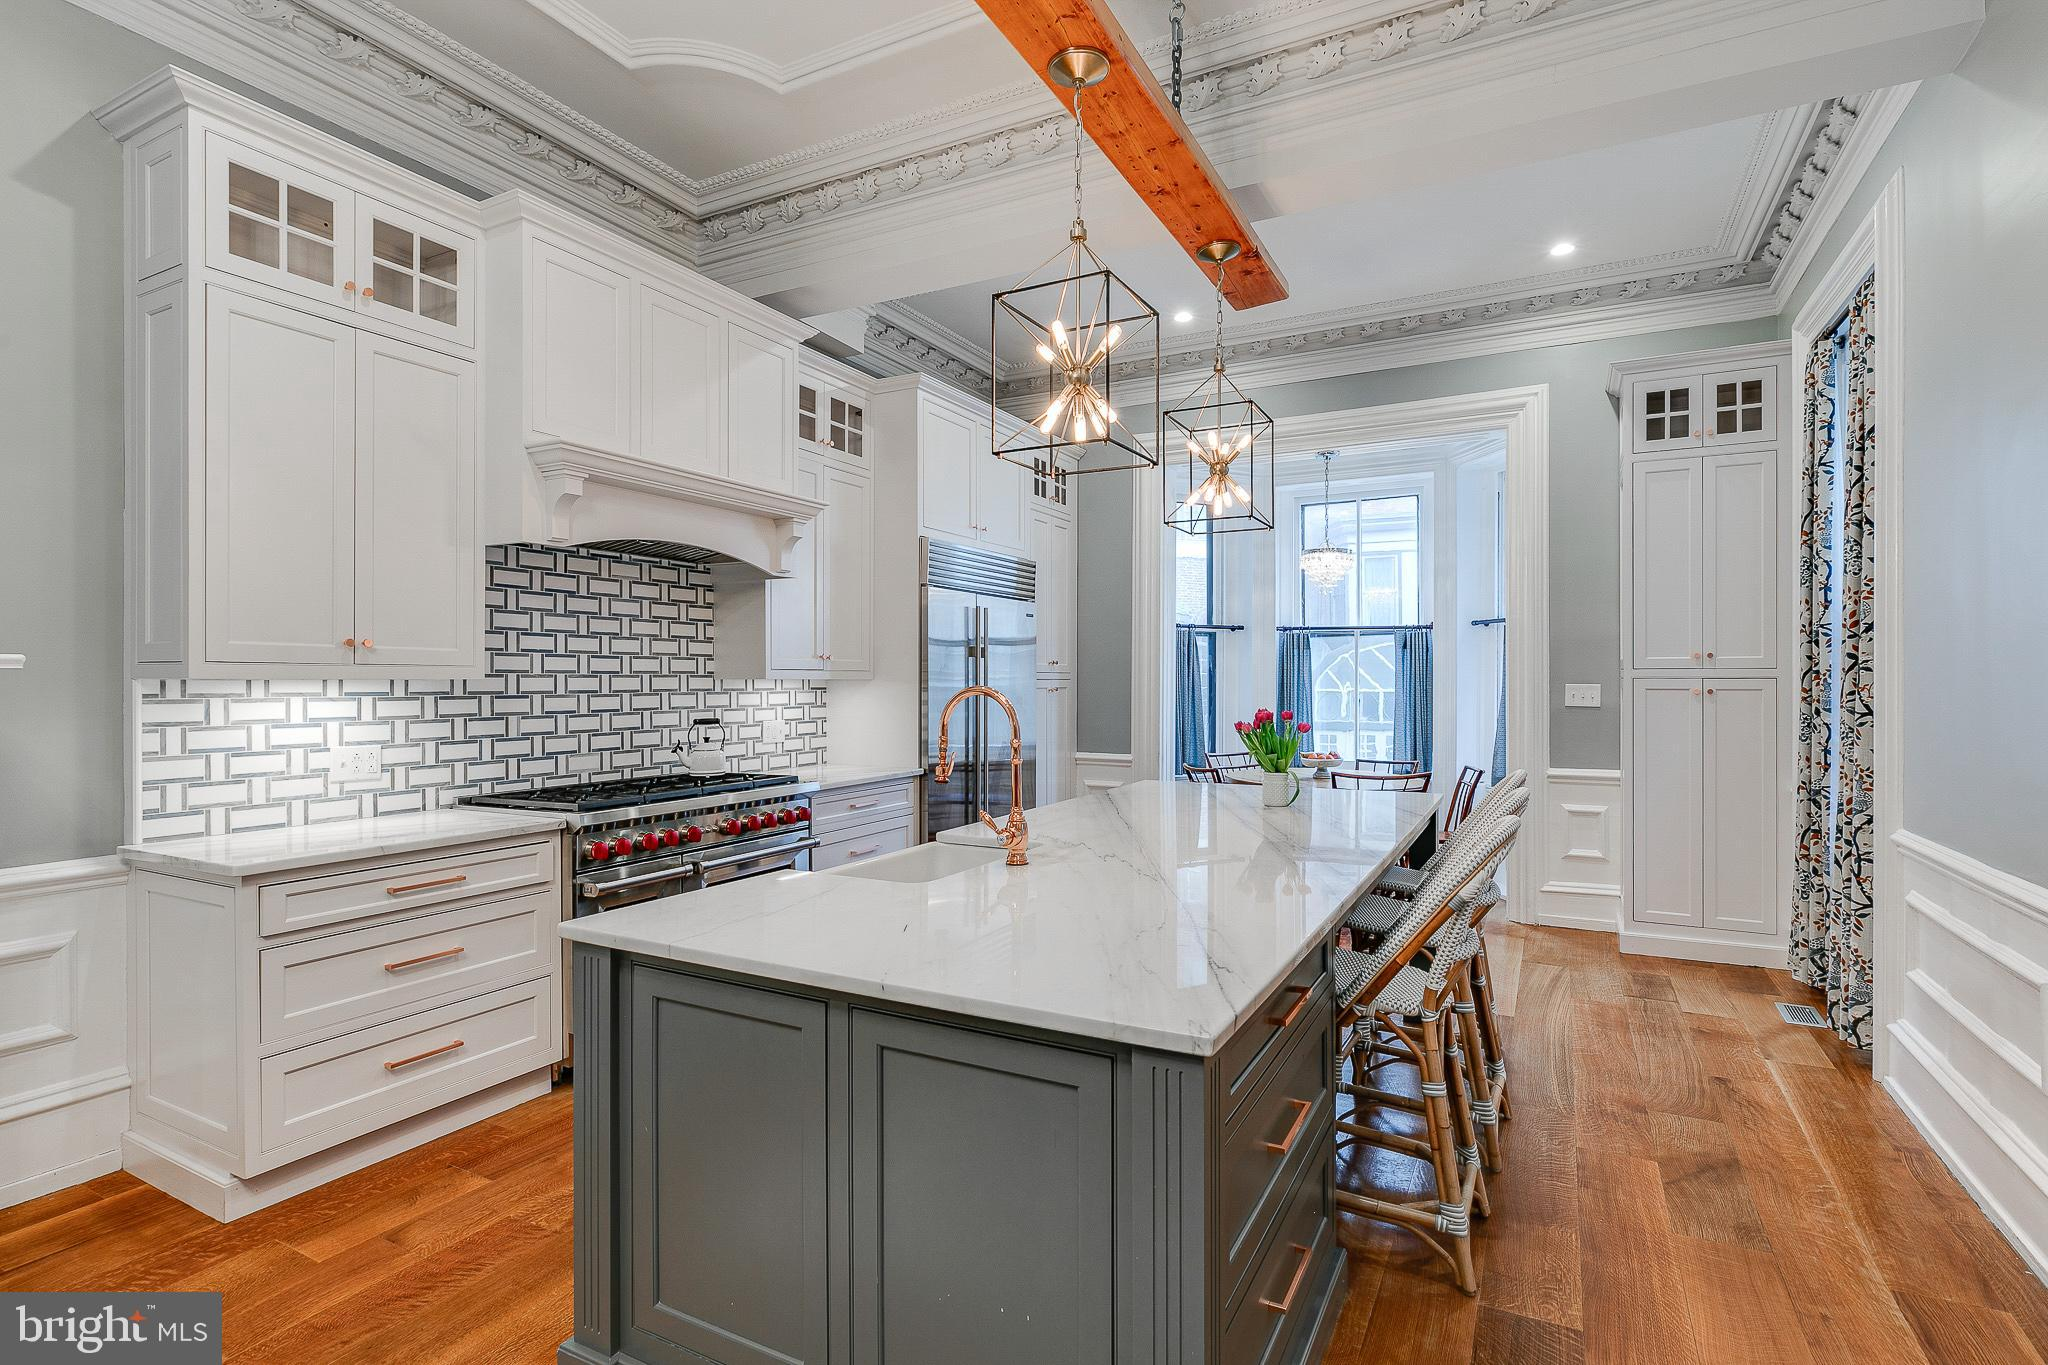 """Situated on one of Rittenhouse Square's most iconic blocks sits 2022 Spruce Street a 22x120, 5900 sq ft, single-family townhouse. Constructed in 1752, the sun-filled Federal-style home is replete with original detail and charm that makes townhouse living so sought after. Amenities include two car parking, grand salon, six bedrooms, abundant closet space, three fireplaces, and original detail throughout. There is a first floor rear rental unit that may be accessed from the main residence for use as a guest apartment or separate outside access for an income-producing investment. The 2nd floor rear has been transformed a chef's kitchen that will delight entertainers with its spacious island, stone countertops and high-end inclusions, plus there is a separate sitting area with fireplace and home management built ins. The entire Townhouse is graced with lavish detail throughout. This Majestic Mansion boasts the most important and sought-after location in the city. Steps from Rittenhouse Square and neighborhood shopping and Philadelphia Museums and the Arts.  LAYOUT:  LOWER LEVEL: Unfinished with storage and mechanicals  GROUND FLOOR: Entrance vestibule. Magnificent reception hall and elegant formal stairway with an extraordinary staircase and banister. Grand Salon with fireplace. Powder room. Separate guest suite currently used as an income unit. Access to 2 Car Parking.  PARLOR FLOOR: Unusually wide landing which is currently used as the dining room. Formal living room with fireplace. South-facing custom Kitchen with 12' 6"""" ceiling height with ornate plaster moldings throughout. Breakfast area and large sitting room. Powder room.  THIRD FLOOR: Front: Primary suite with fireplace. Dressing room and oversized bath with Sauna. Rear: Bedroom, Playroom/Sitting room and en-suite bath  FOURTH FLOOR: 3 bedrooms and shared Bath"""